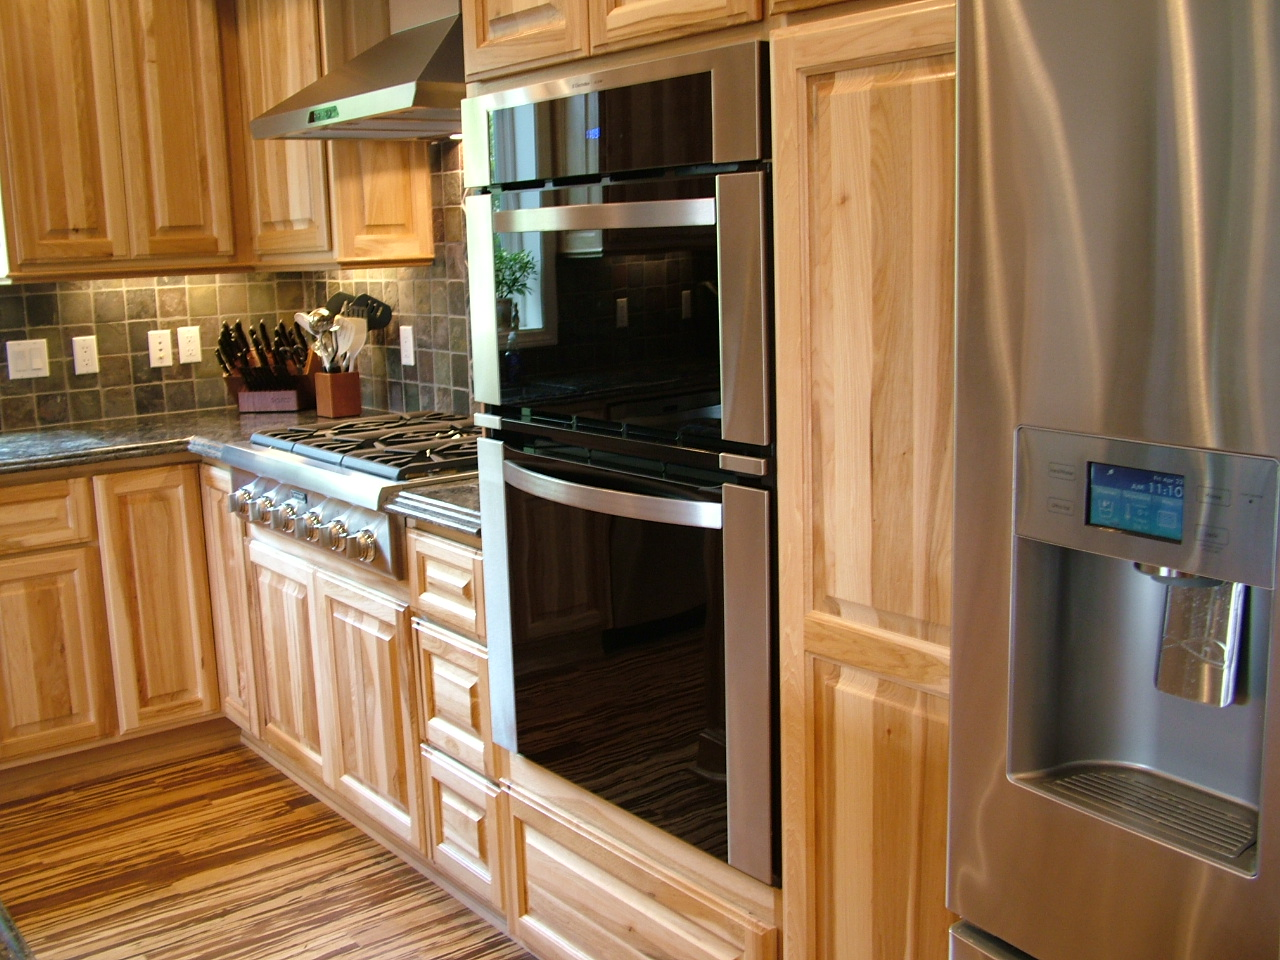 Hickory Kitchen Cabinets with Wood Floors